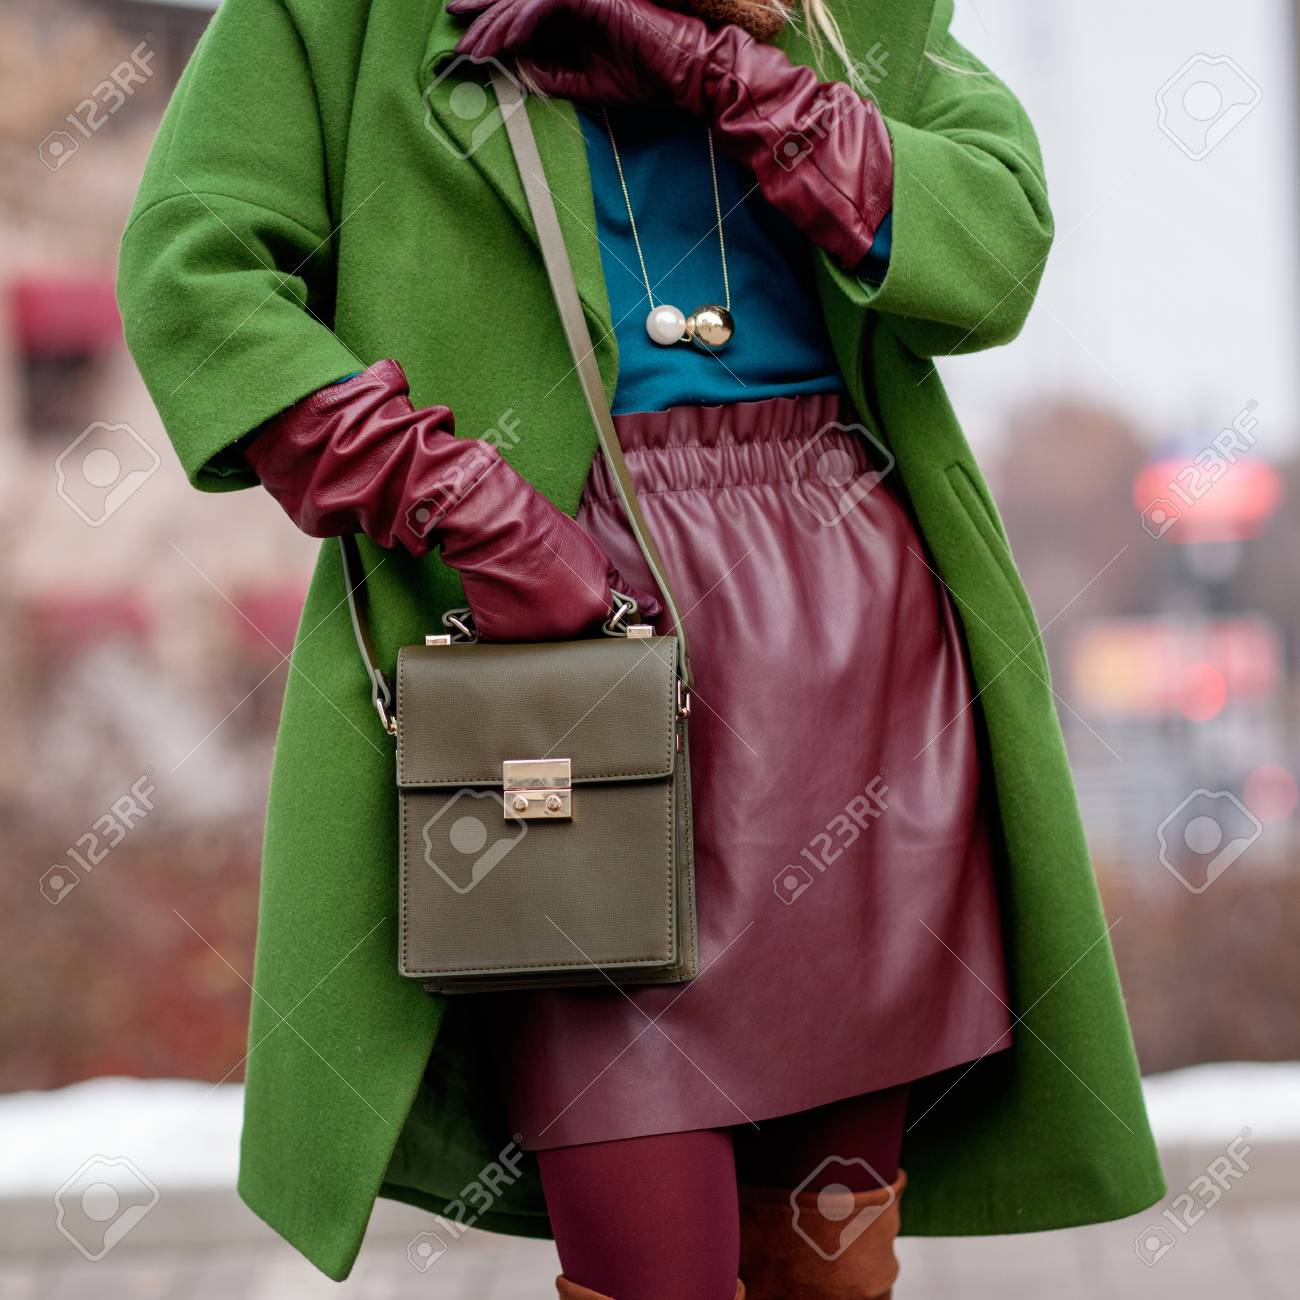 Street and bright style. Young girl in a green coat, stylish leather skirt. Details. Sguare image photo - 101515356